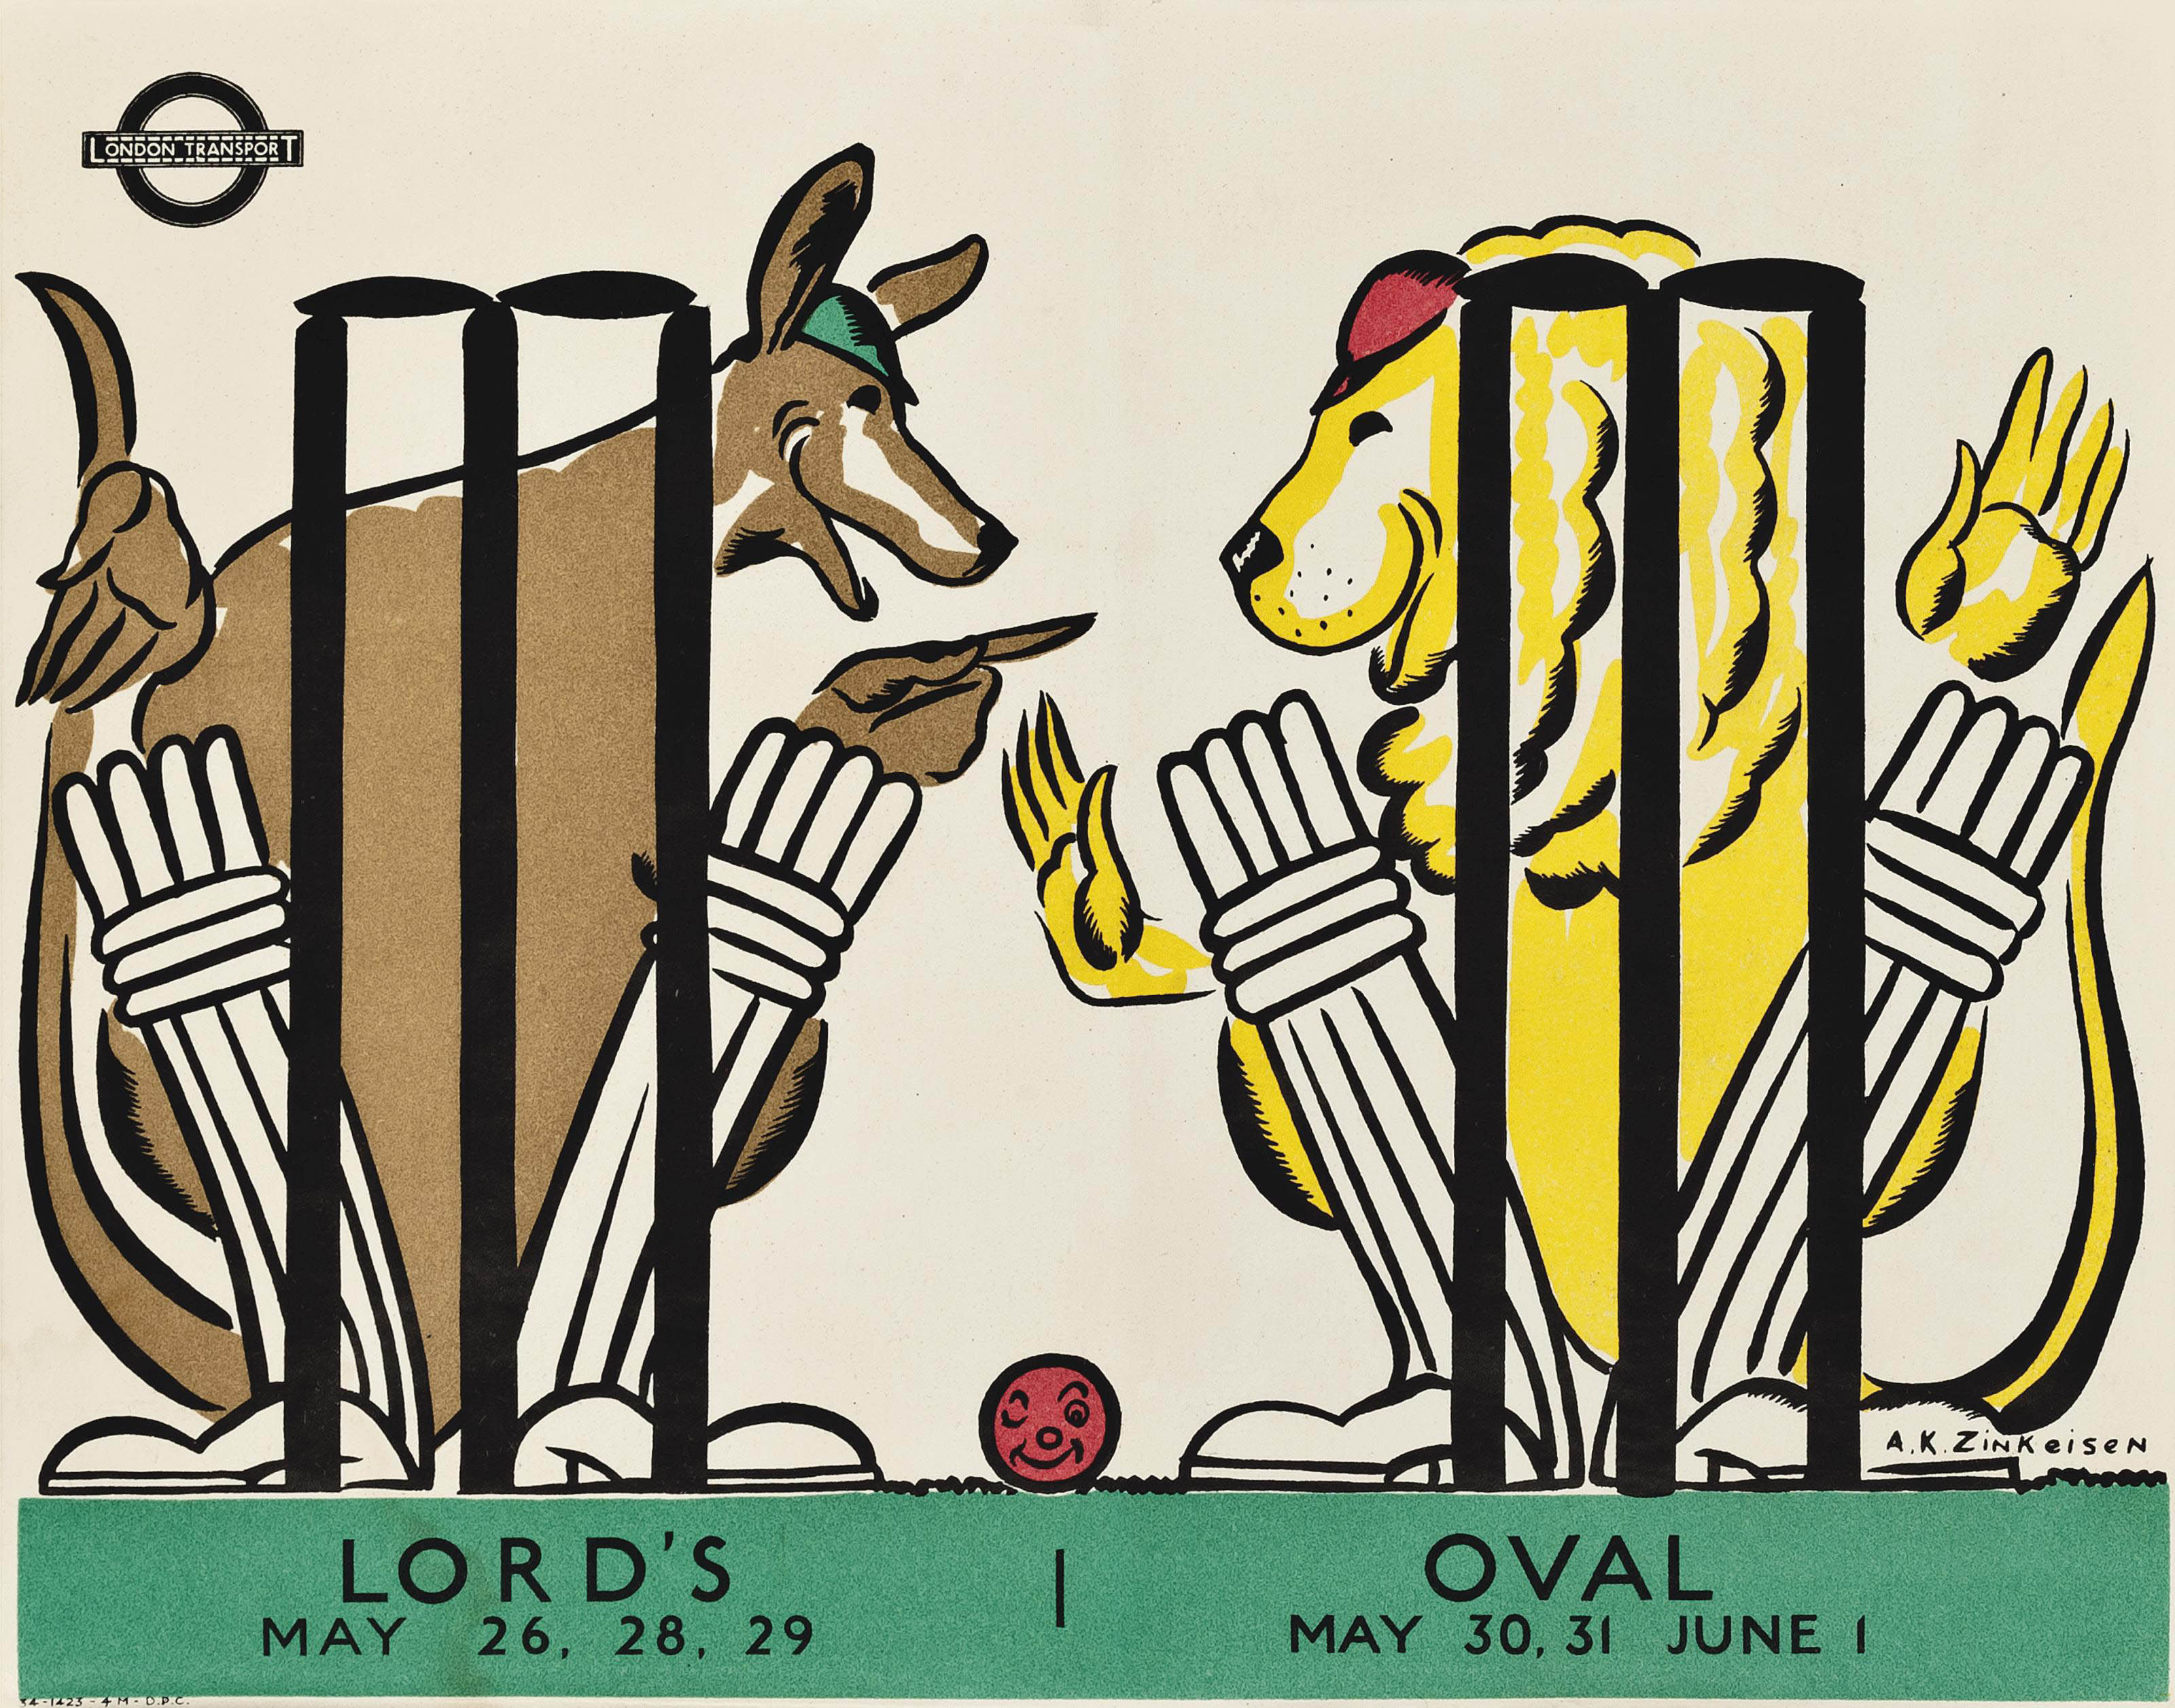 LORD'S, OVAL